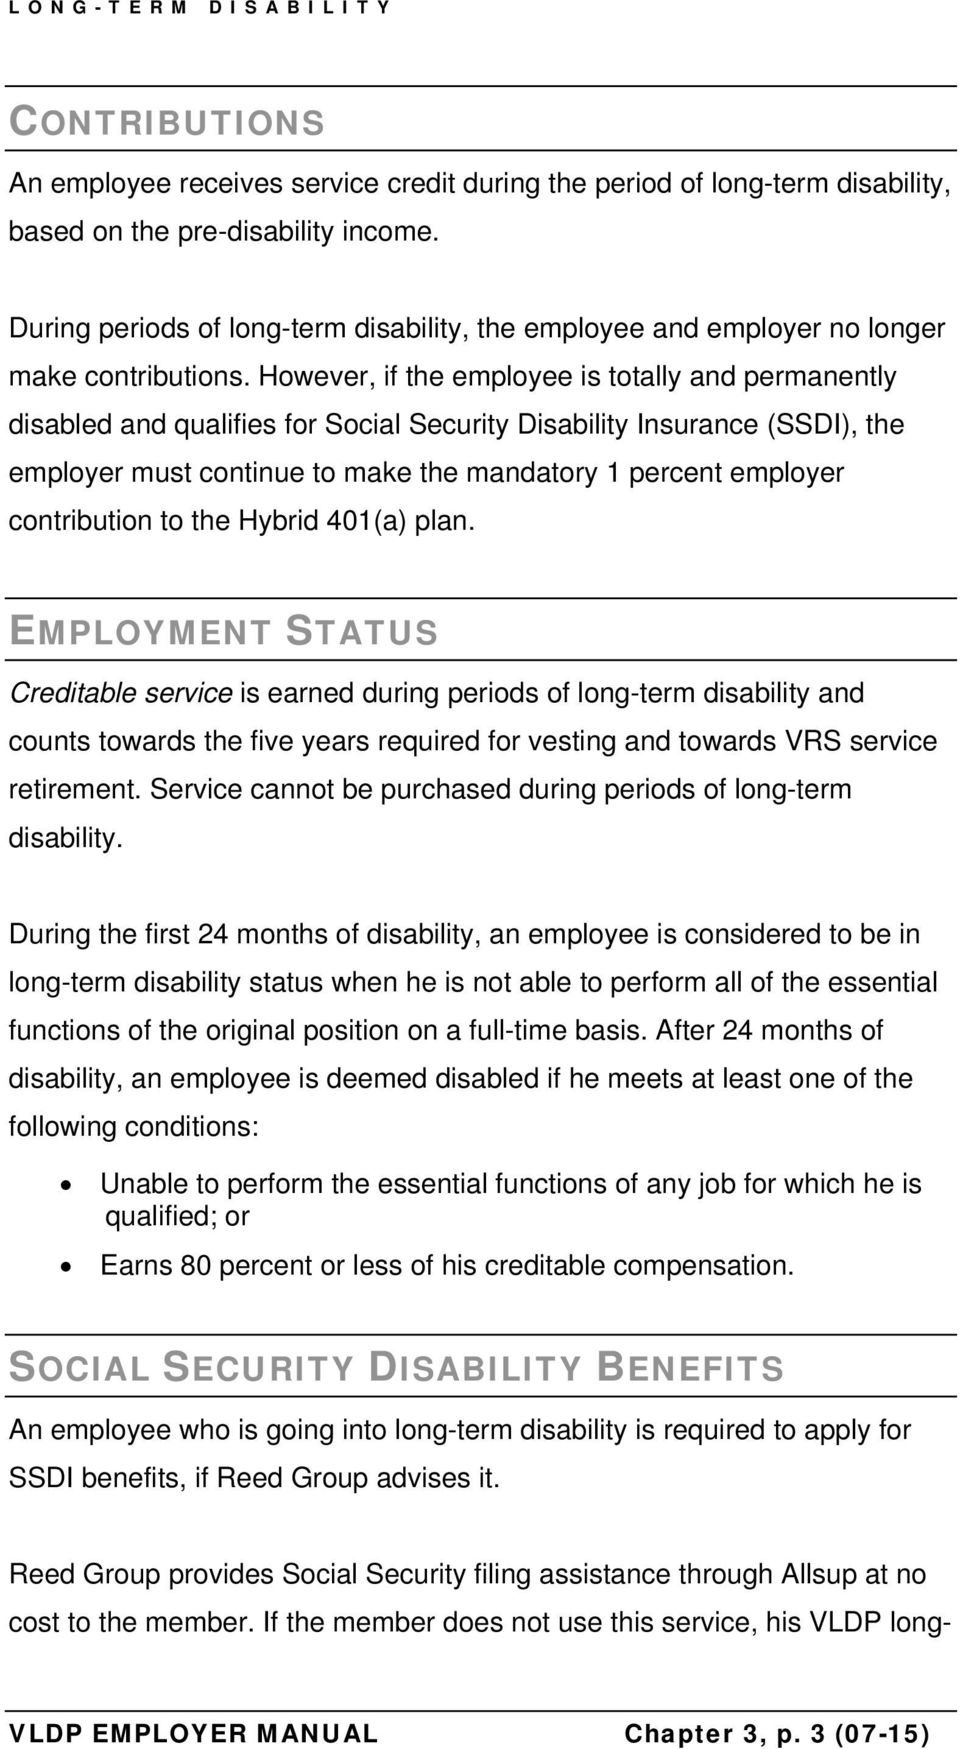 However, if the employee is totally and permanently disabled and qualifies for Social Security Disability Insurance (SSDI), the employer must continue to make the mandatory 1 percent employer